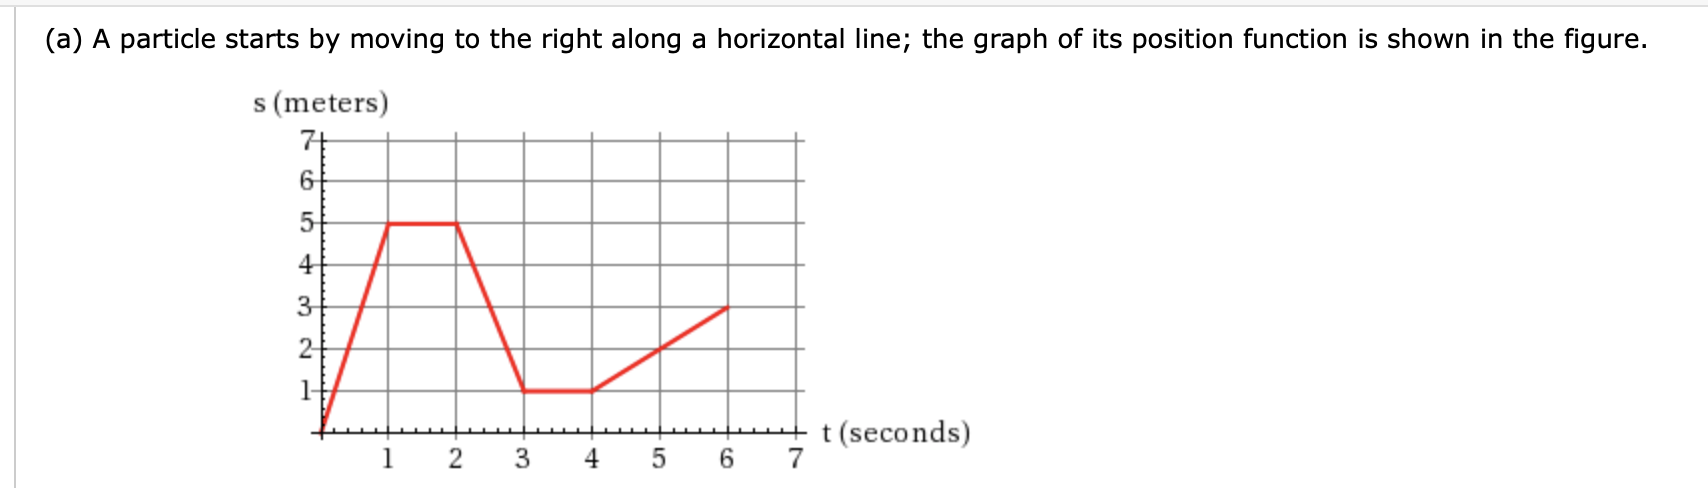 (a) A particle starts by moving to the right along a horizontal line; the graph of its position function is shown in the figure. s (meters) 4 3 2- t(seconds) -N CO -LO